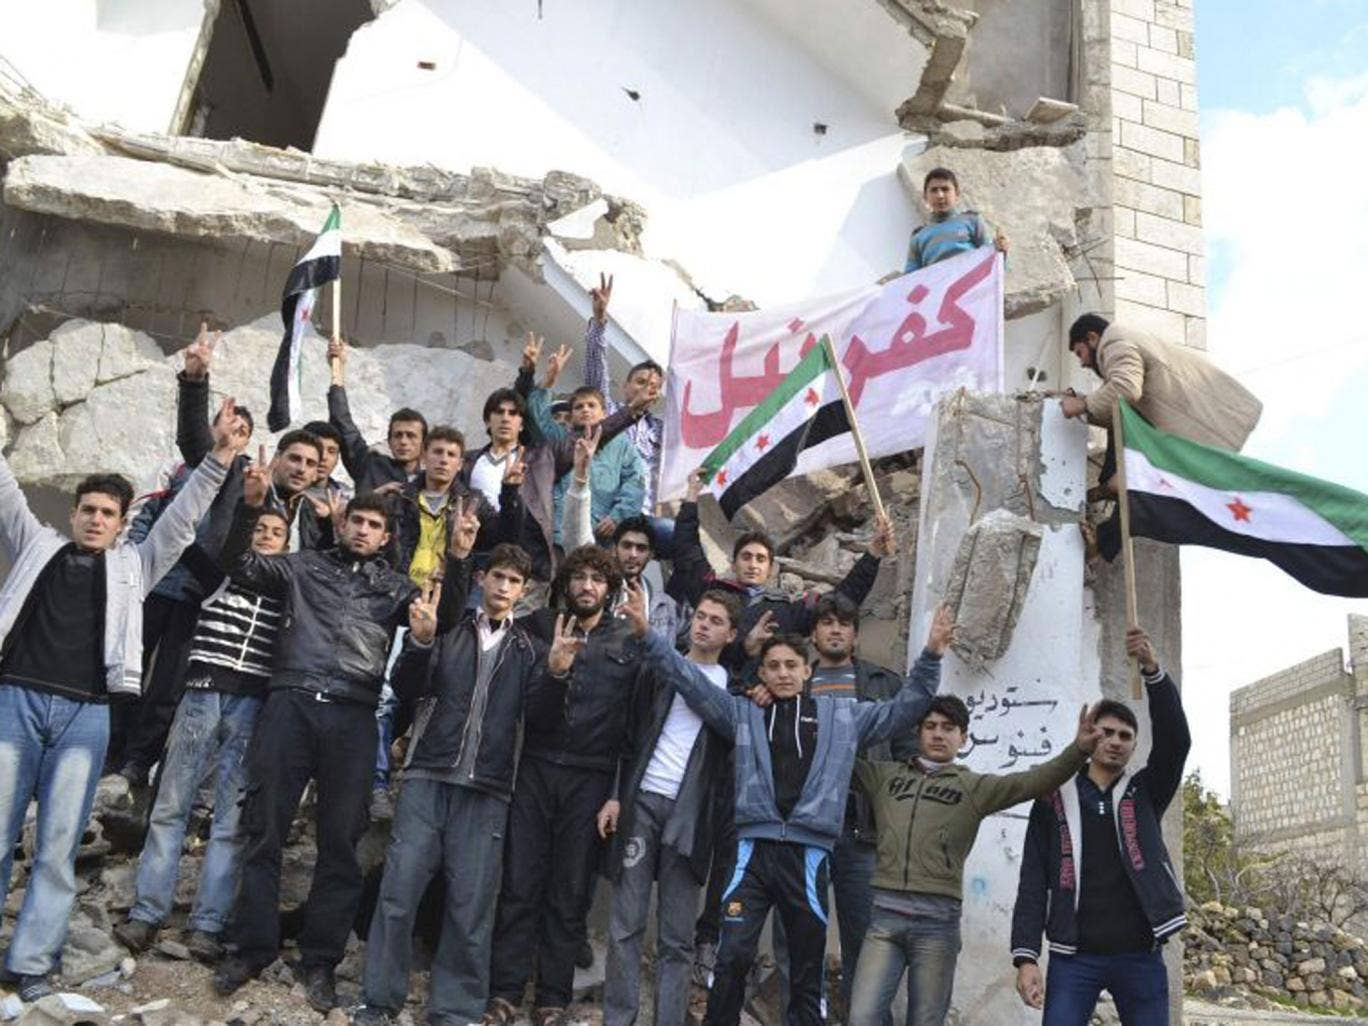 Anti-regime protesters in Idlib province. The rebels appear to be gaining more ground from President Assad's forces R